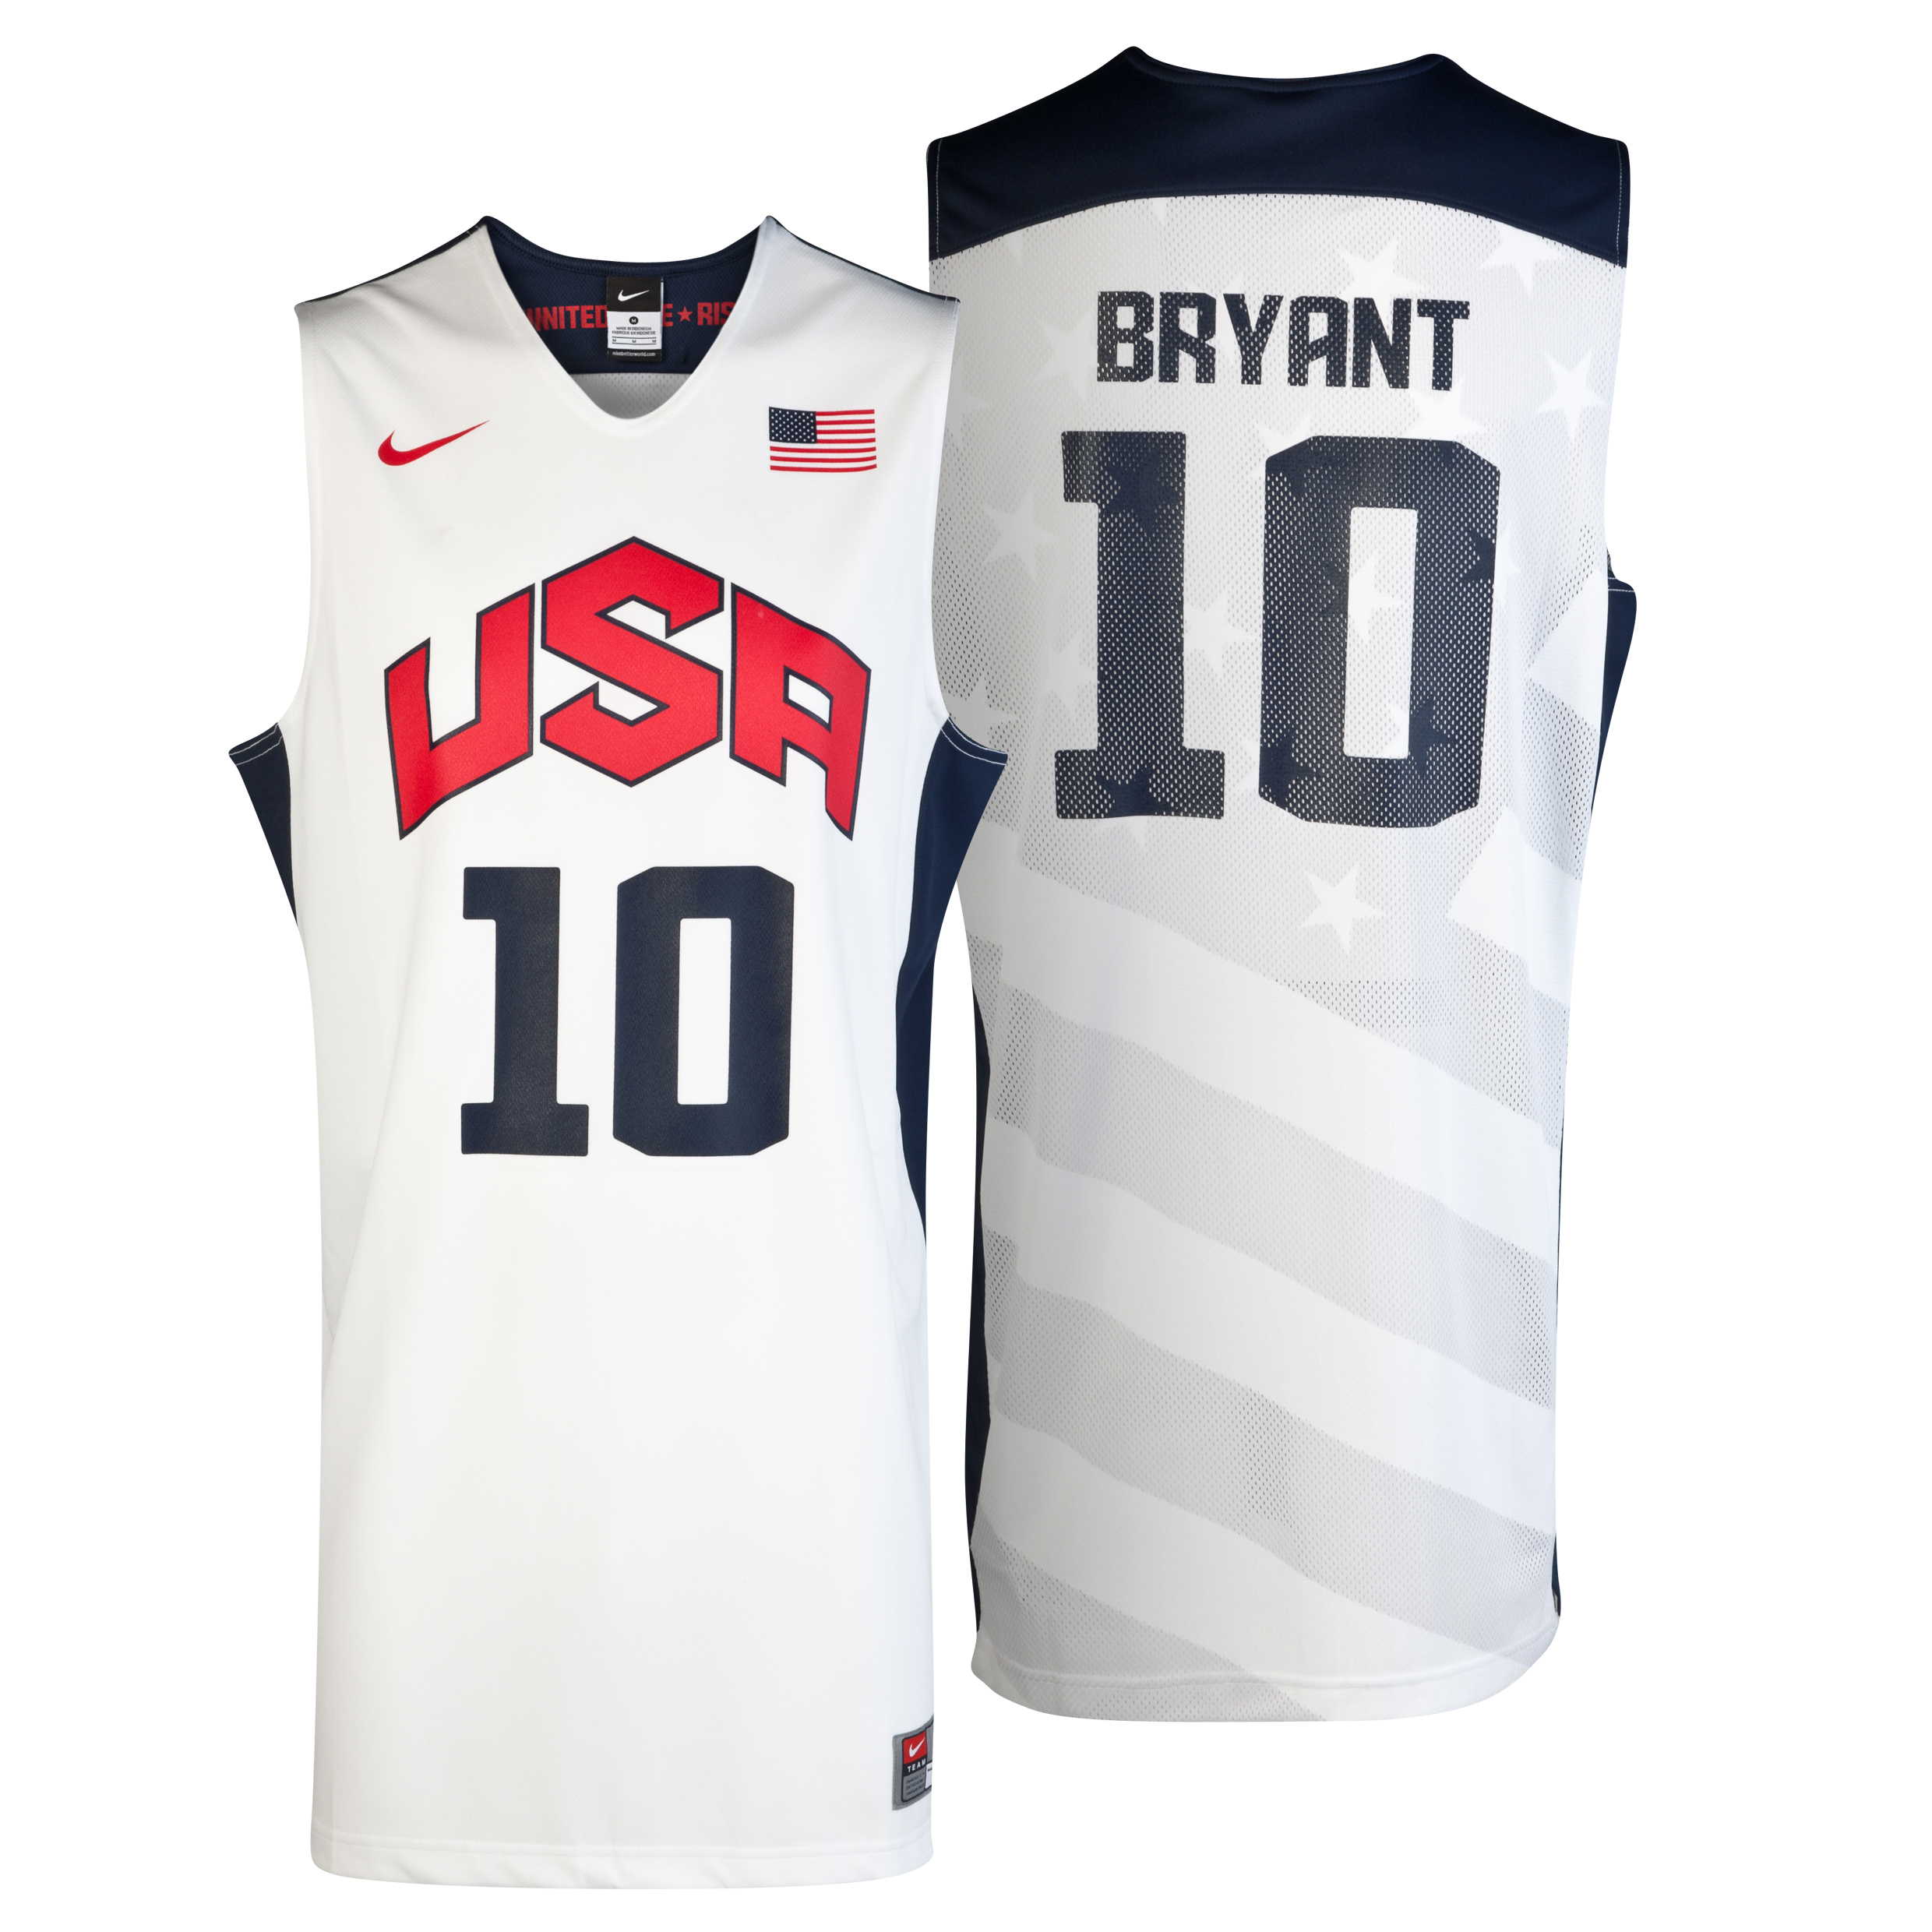 Nike USA Replica Home Jersey - Bryant - White